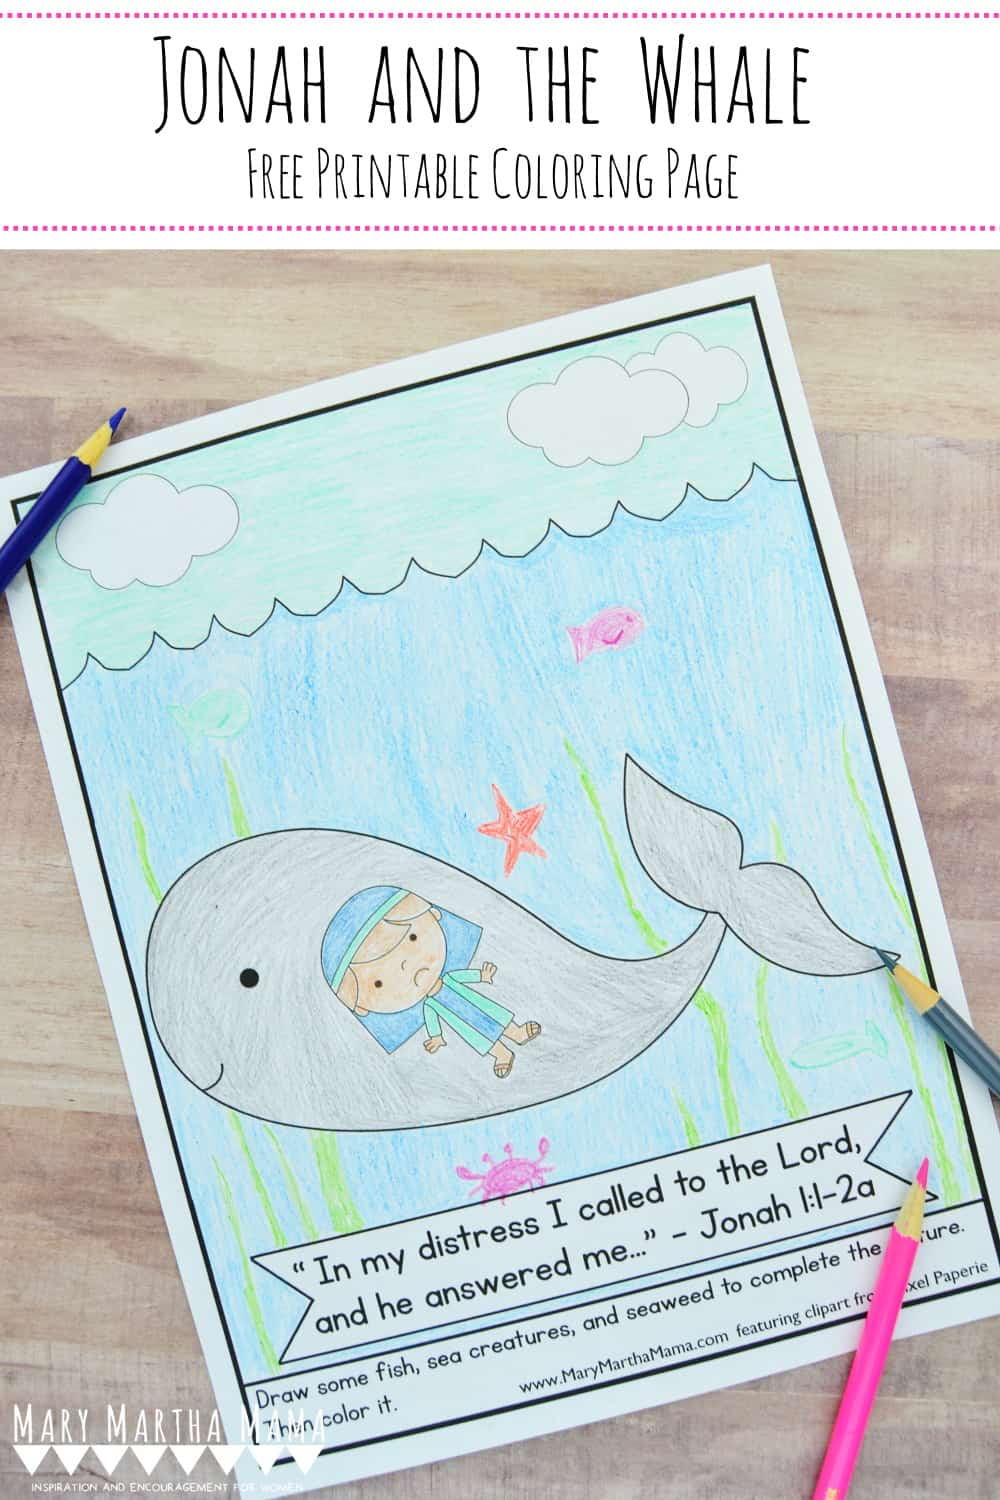 Jonah and the Whale Coloring Page- Free printable Jonah and the Whale Coloring Page #jonahandthewhalecoloringpage #jonahandthewhaleprintable #Biblecoloringpage